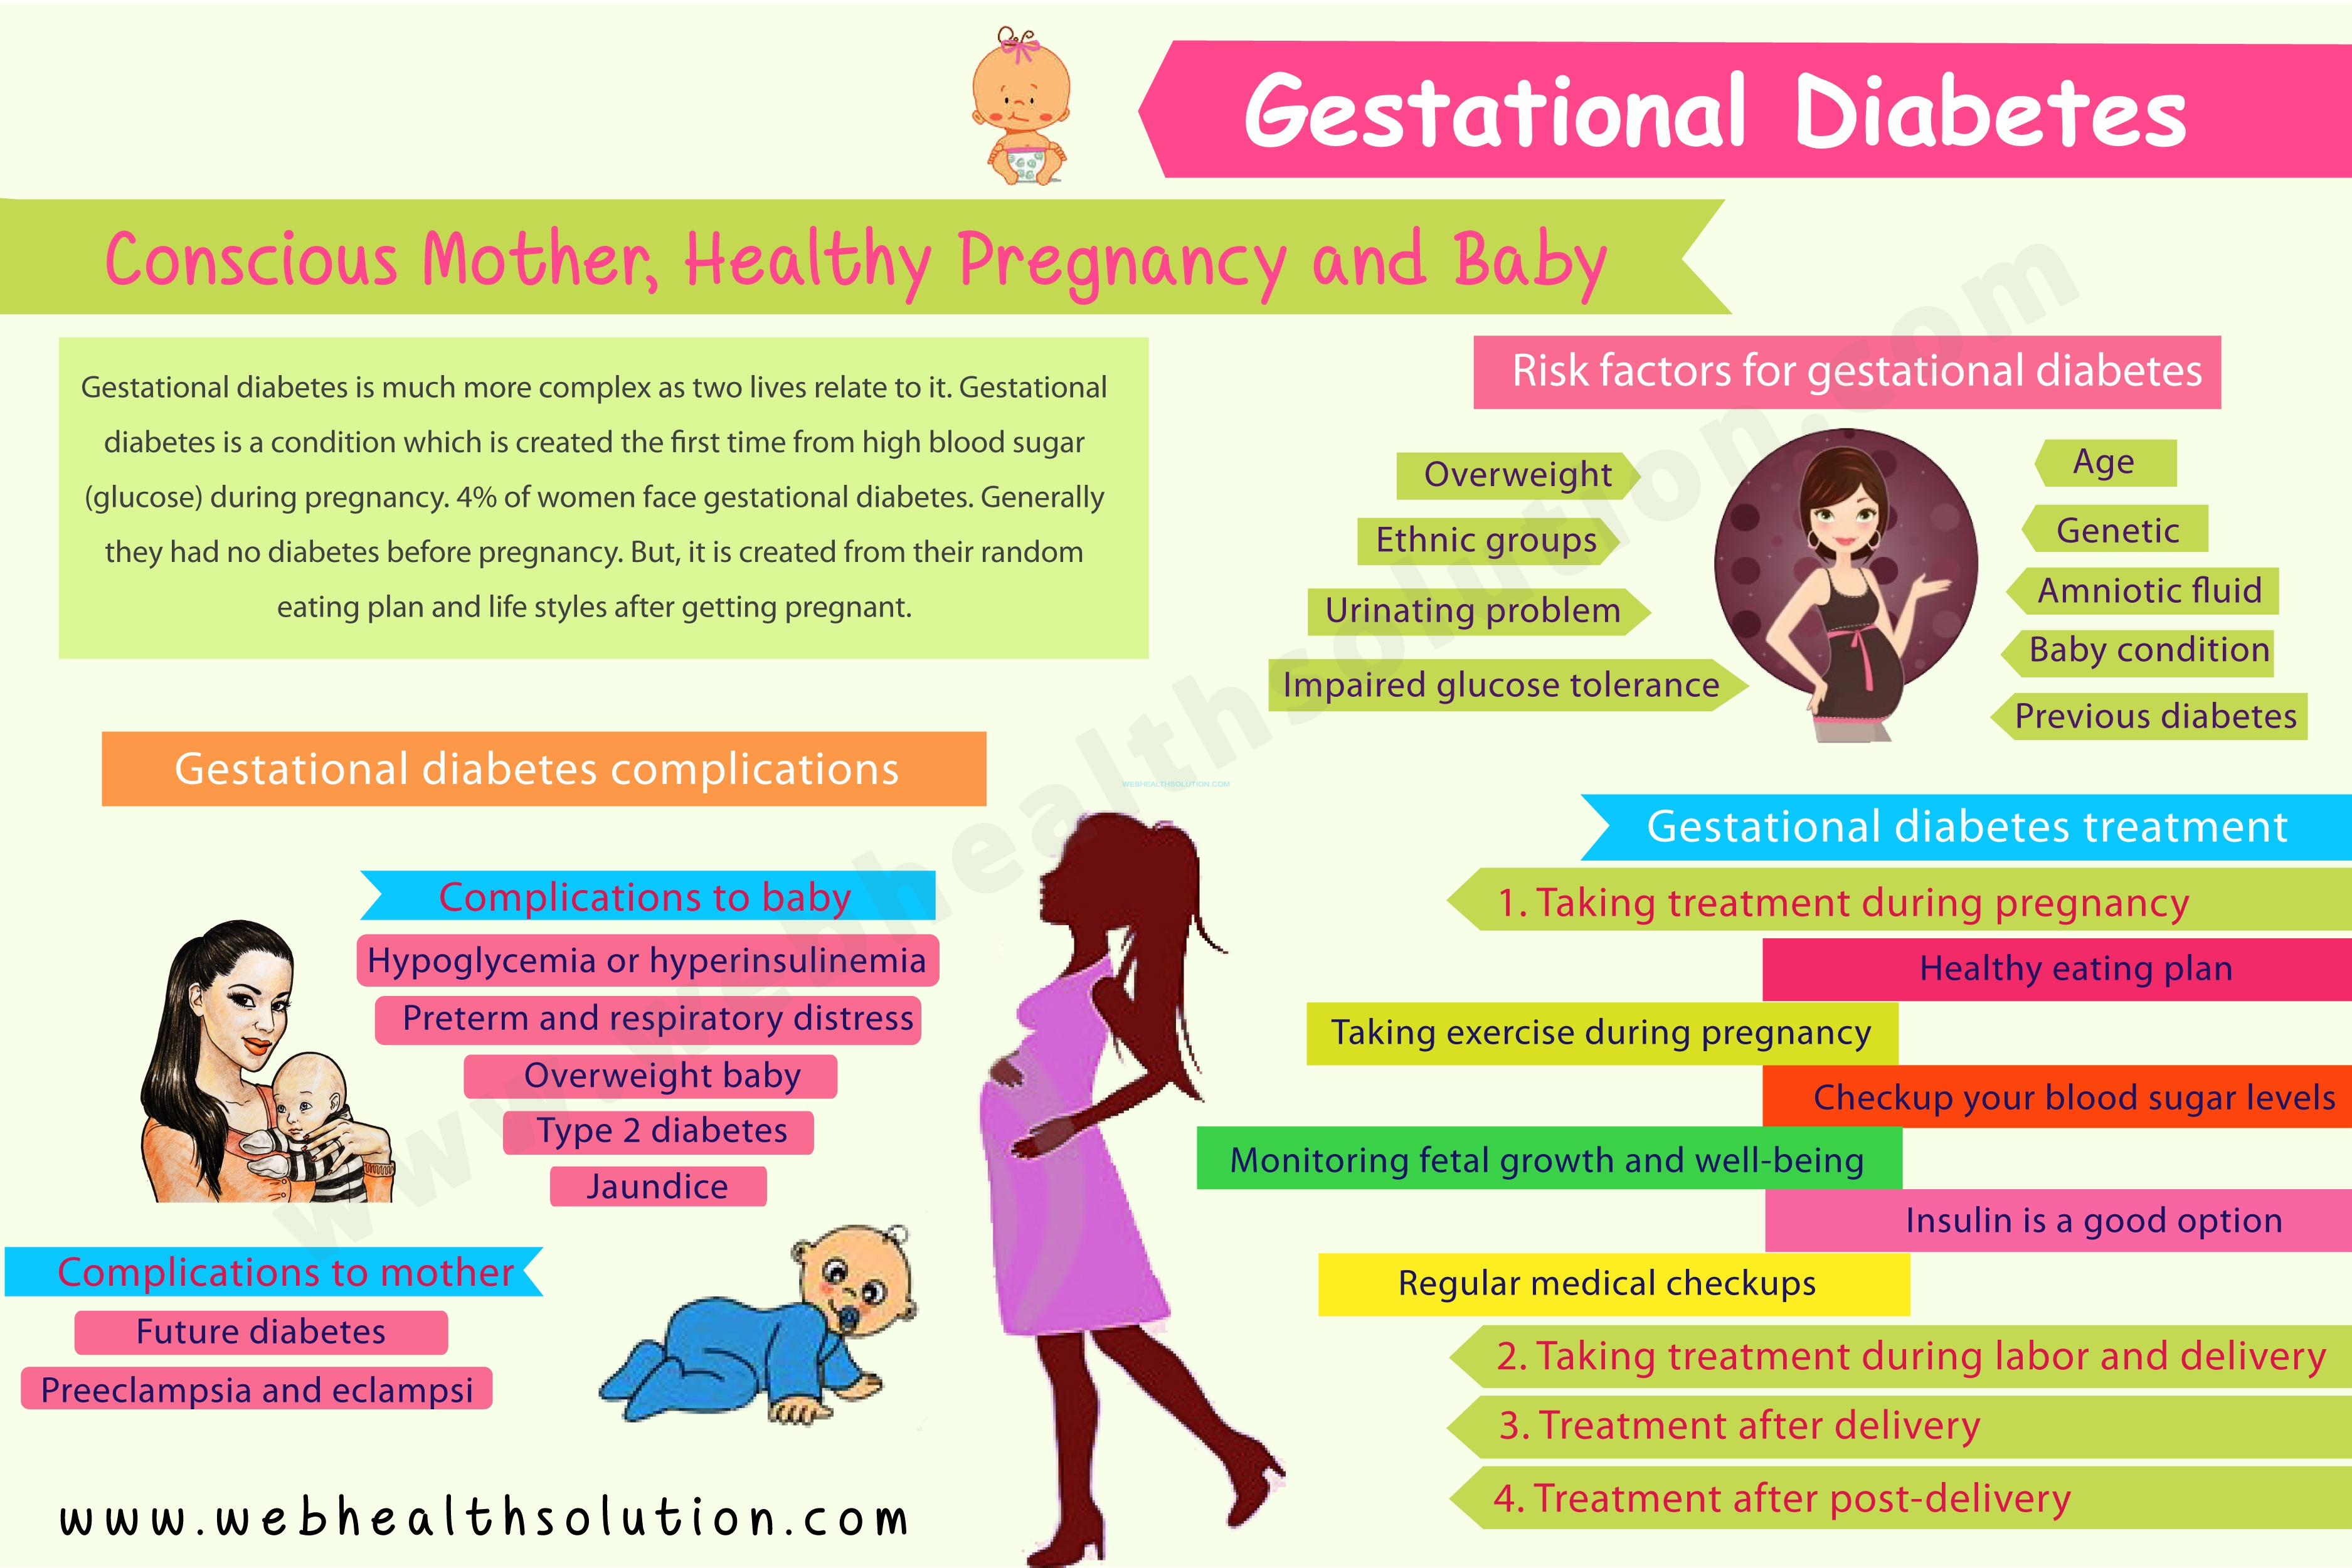 picture Gestational Diabetes Diet: Tips For Managing High Blood Sugar During Pregnancy